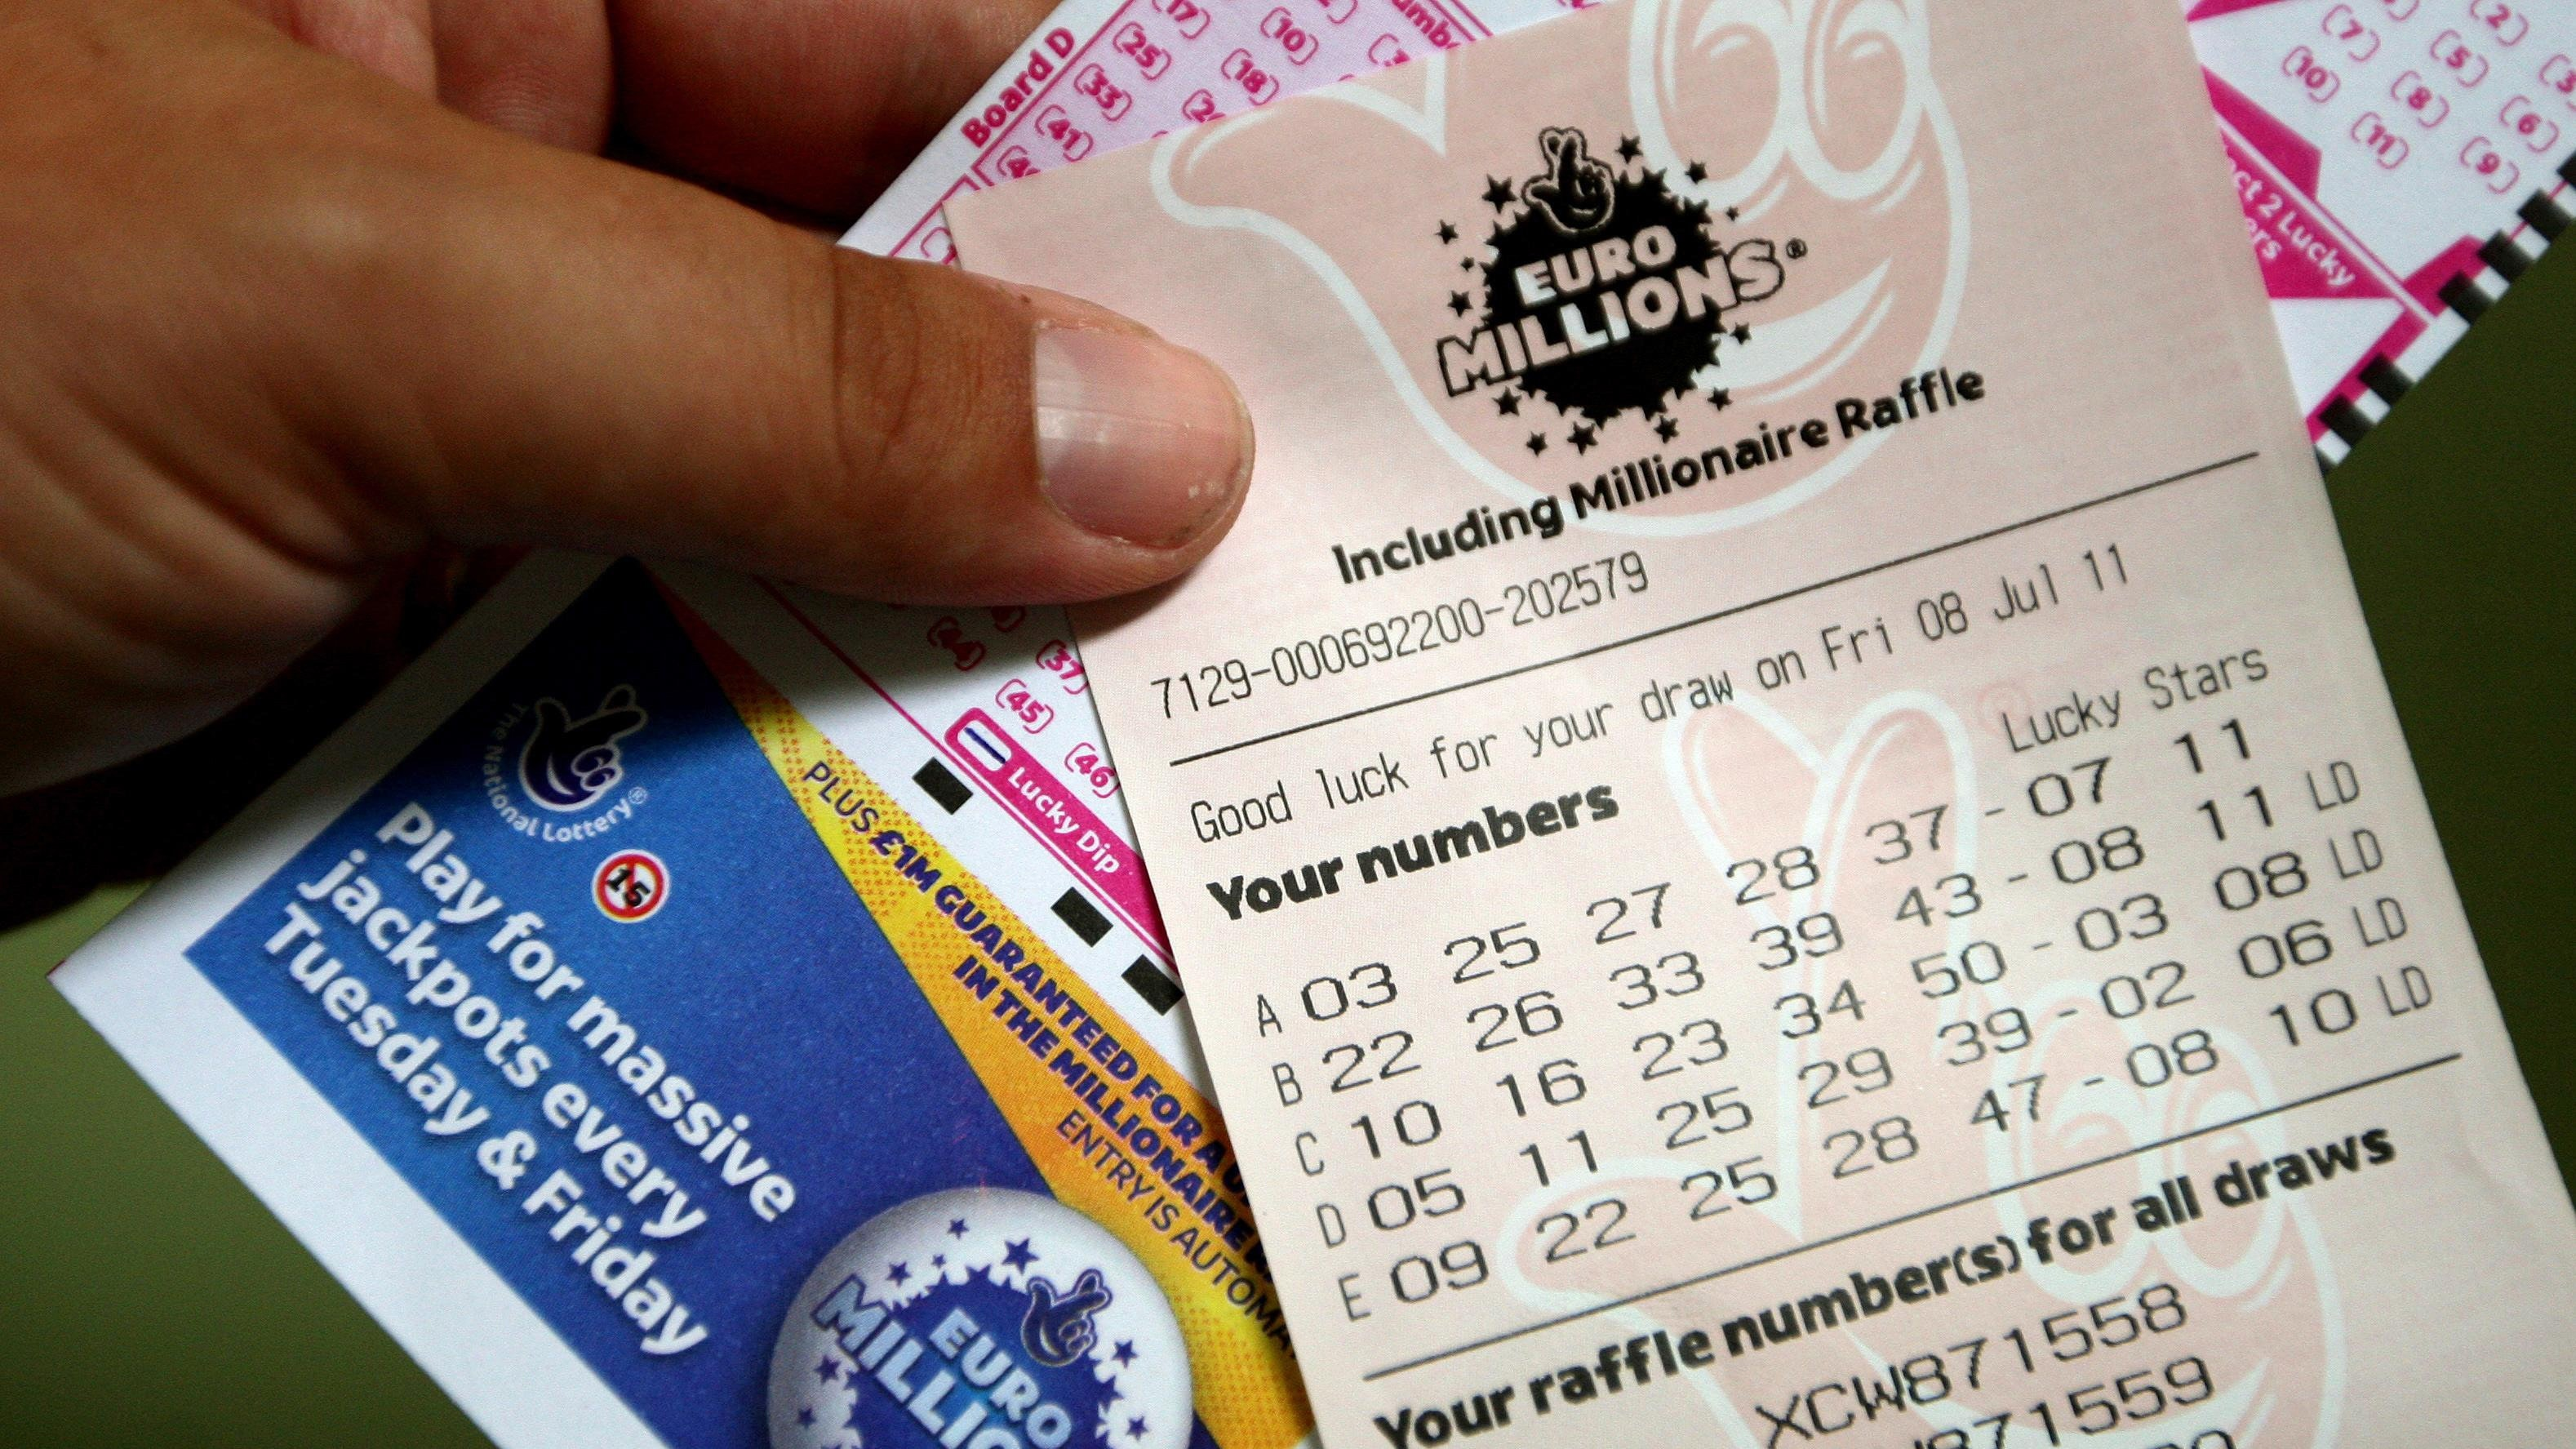 Irish ticket holder scoops record breaking Euromillions jackpot